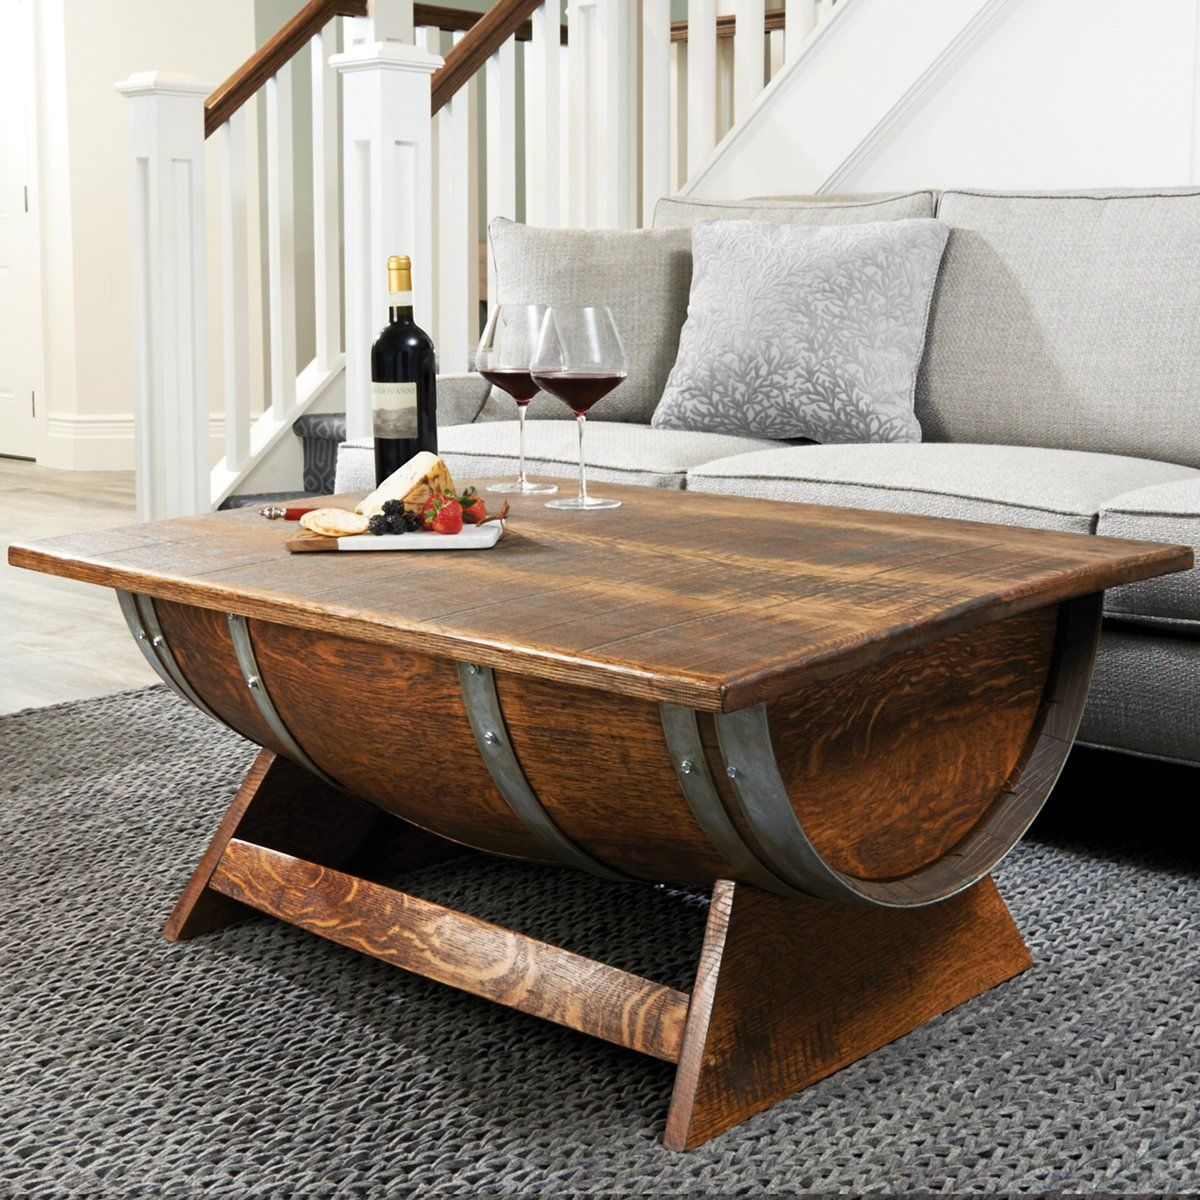 Reclaimed Wine Barrel Coffee Table With Unique Lift-Top in 6